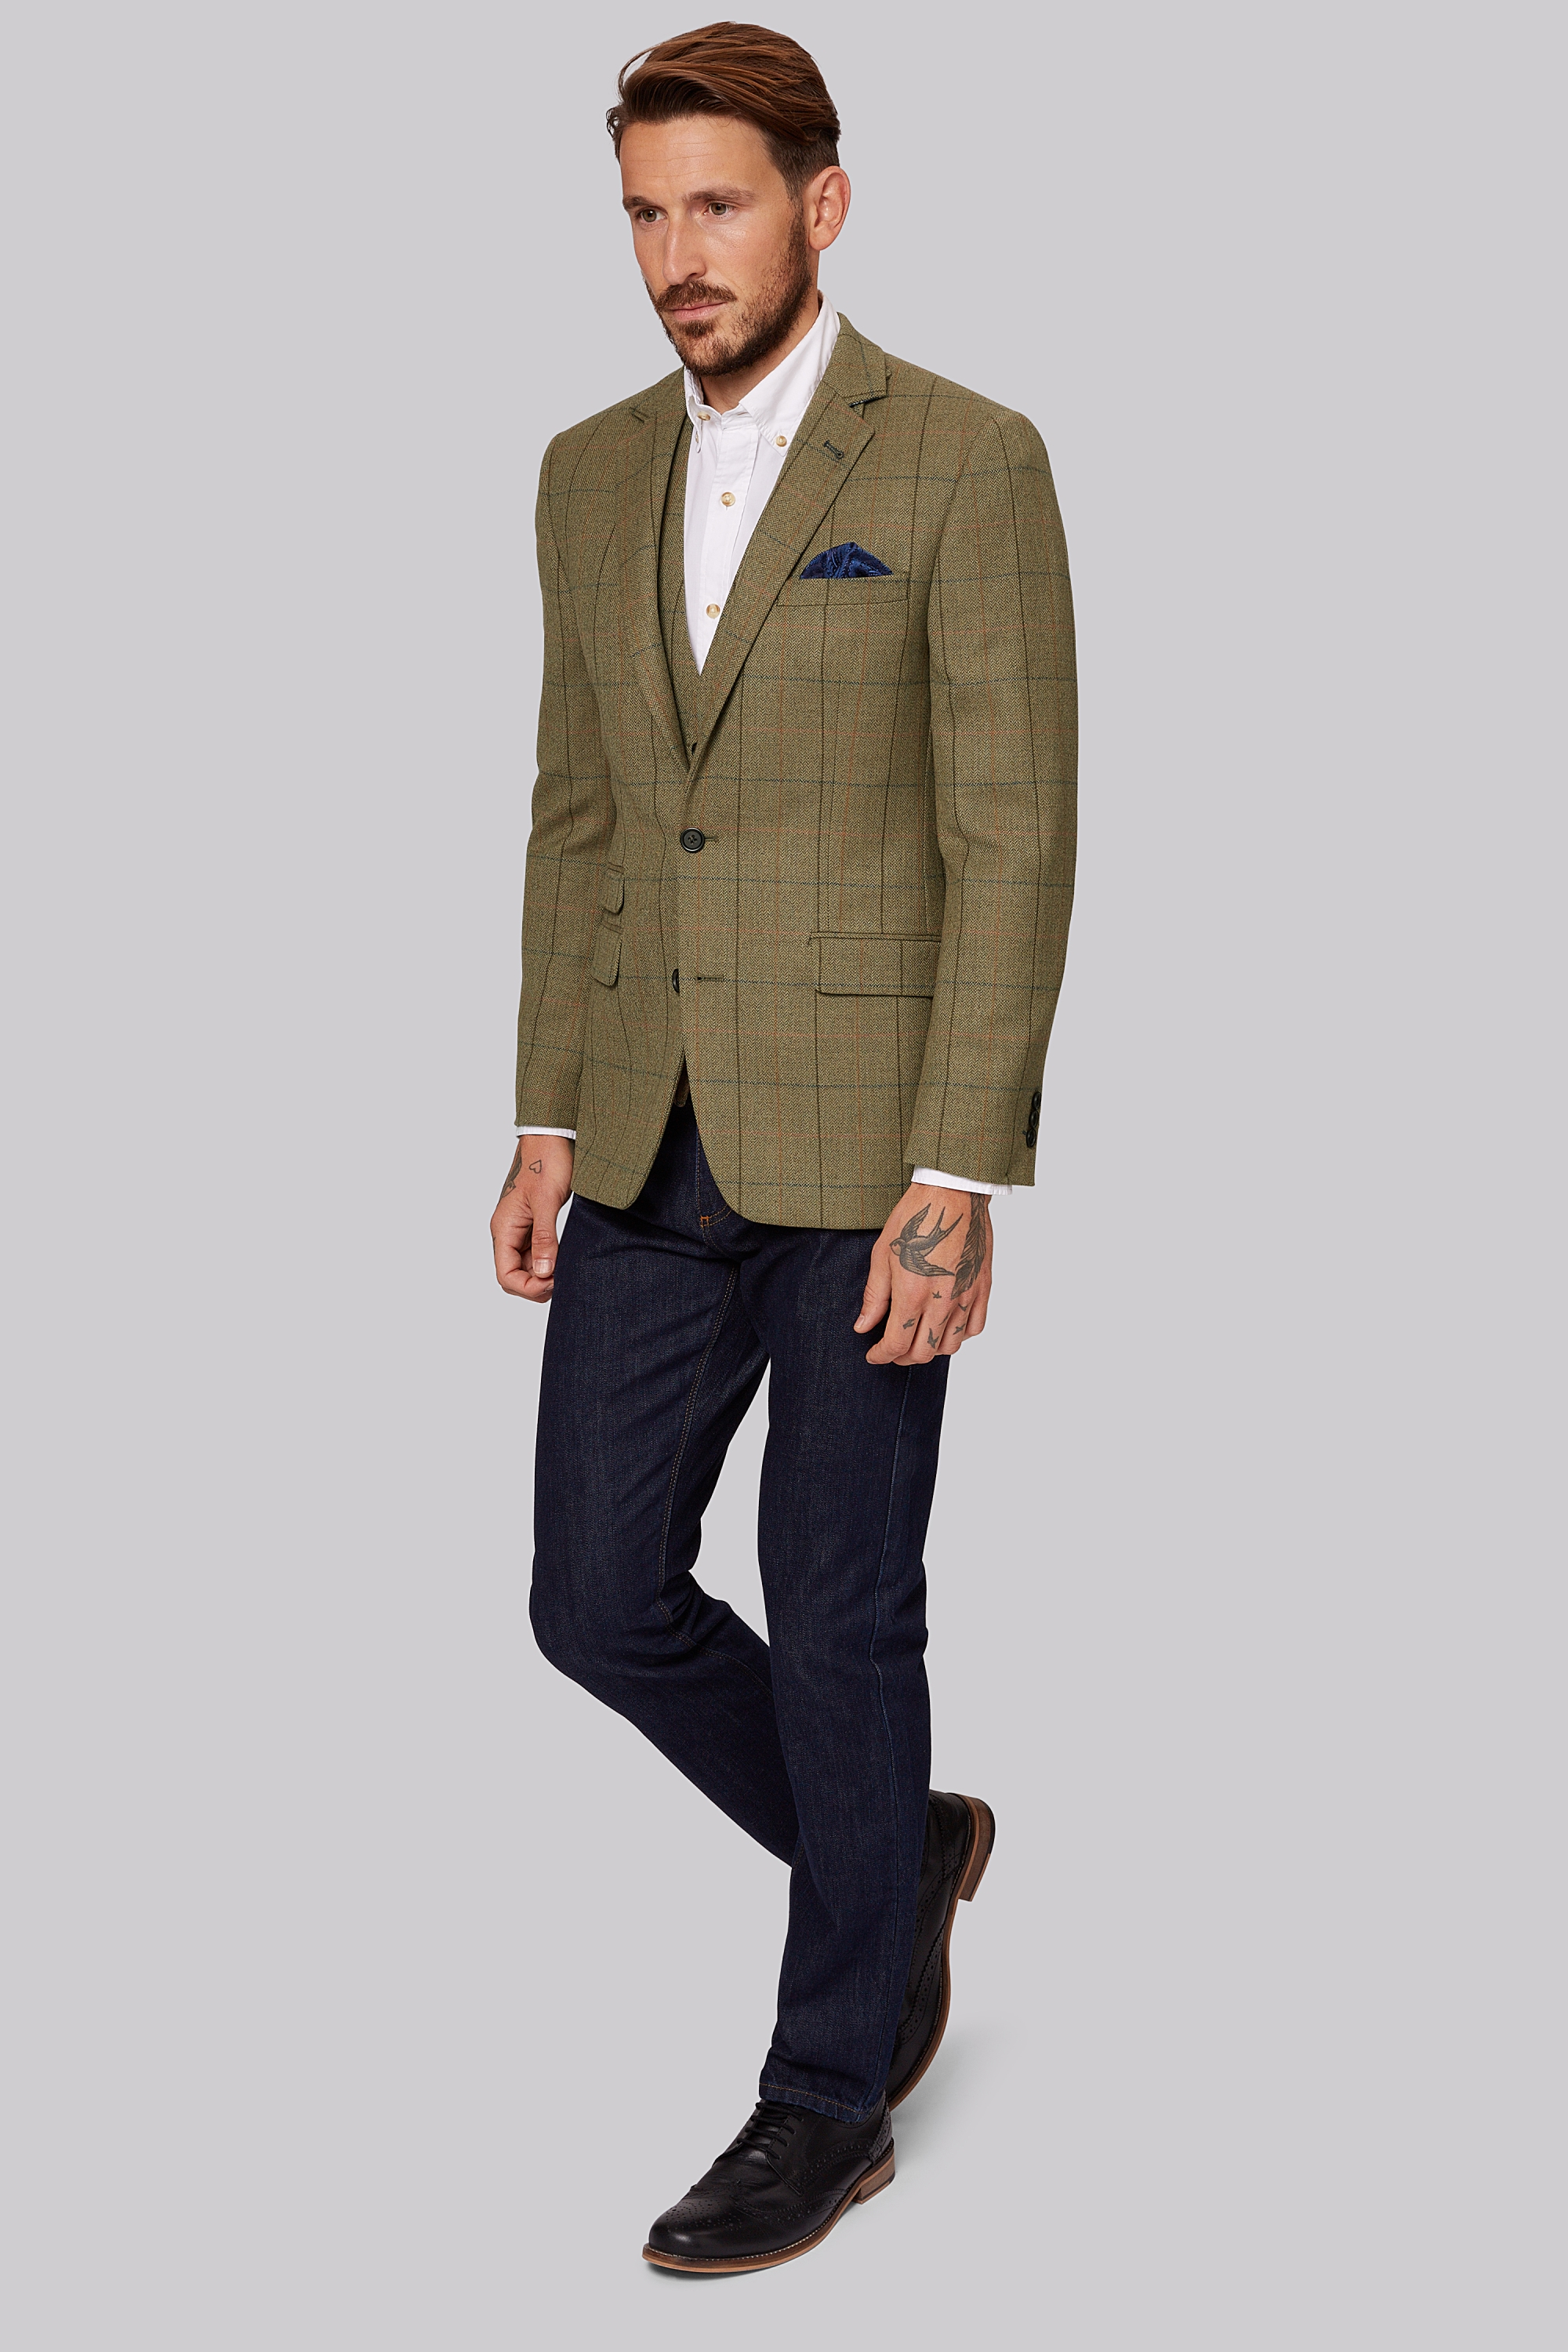 7cac706af5bca1 Moss 1851 Tailored Fit Tan Multi Check Ja... — Thread